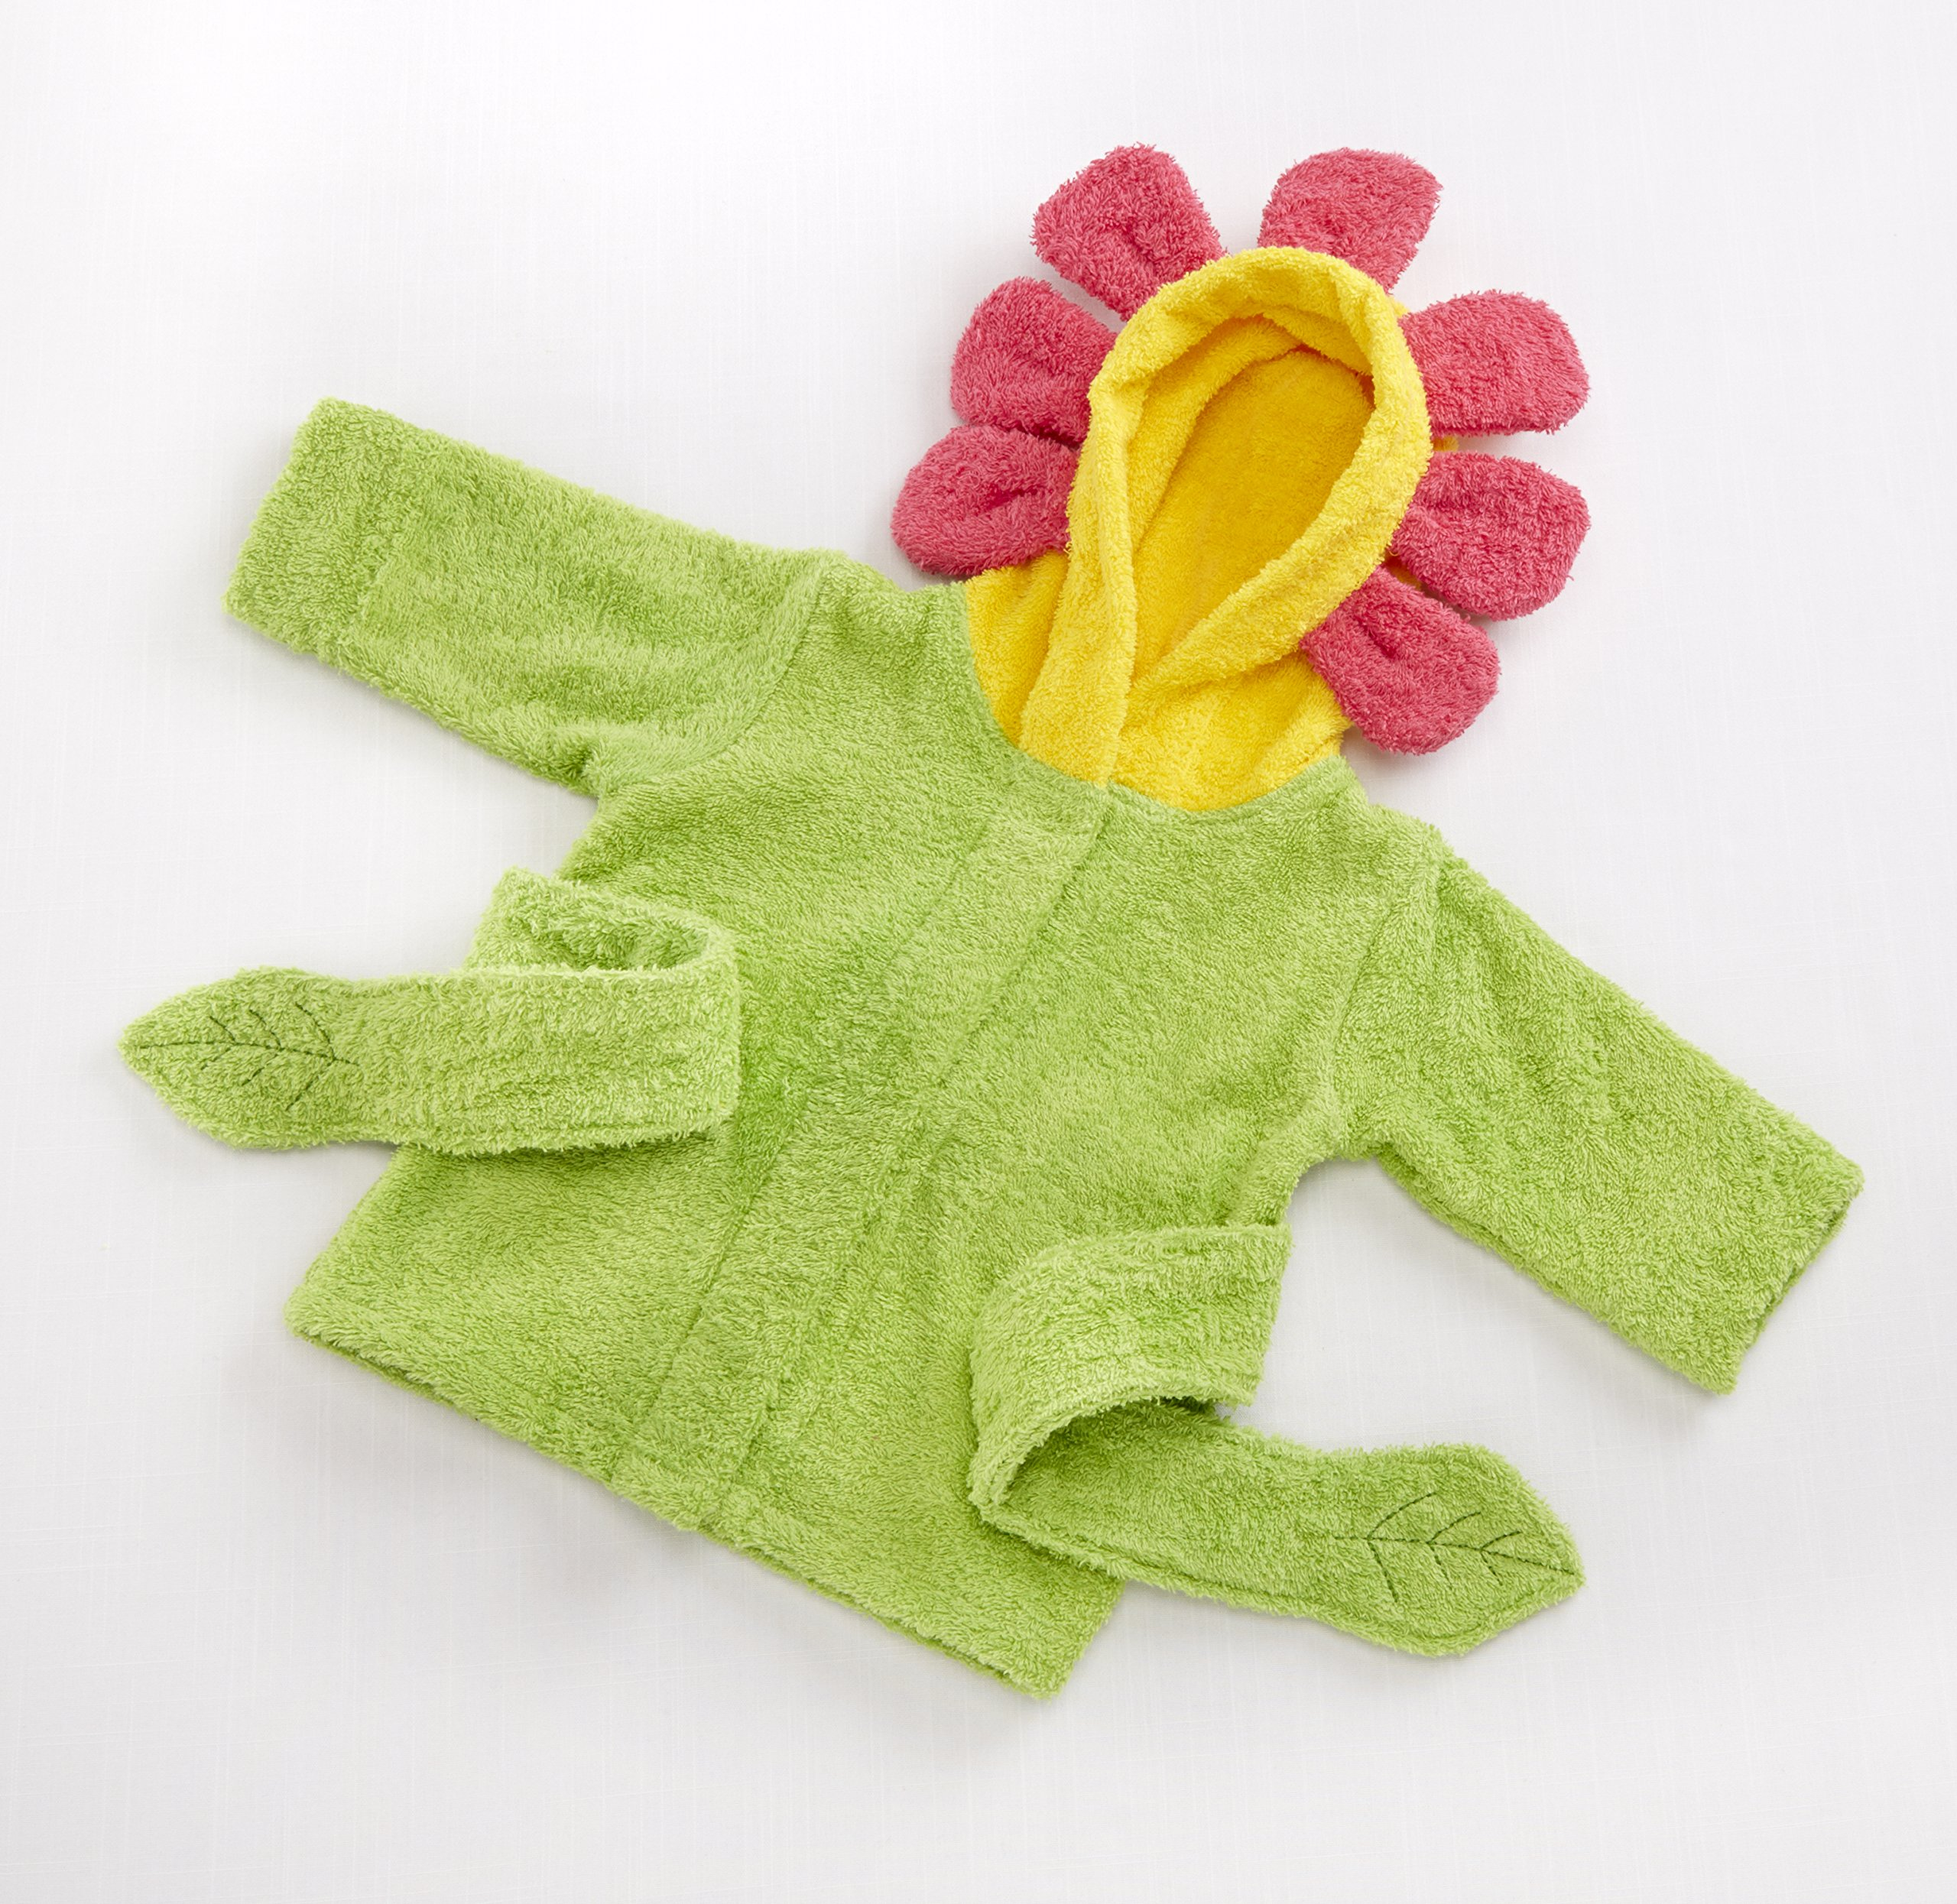 Baby Aspen Hooded Spa Robe, Showers and Flowers by Baby Aspen (Image #3)